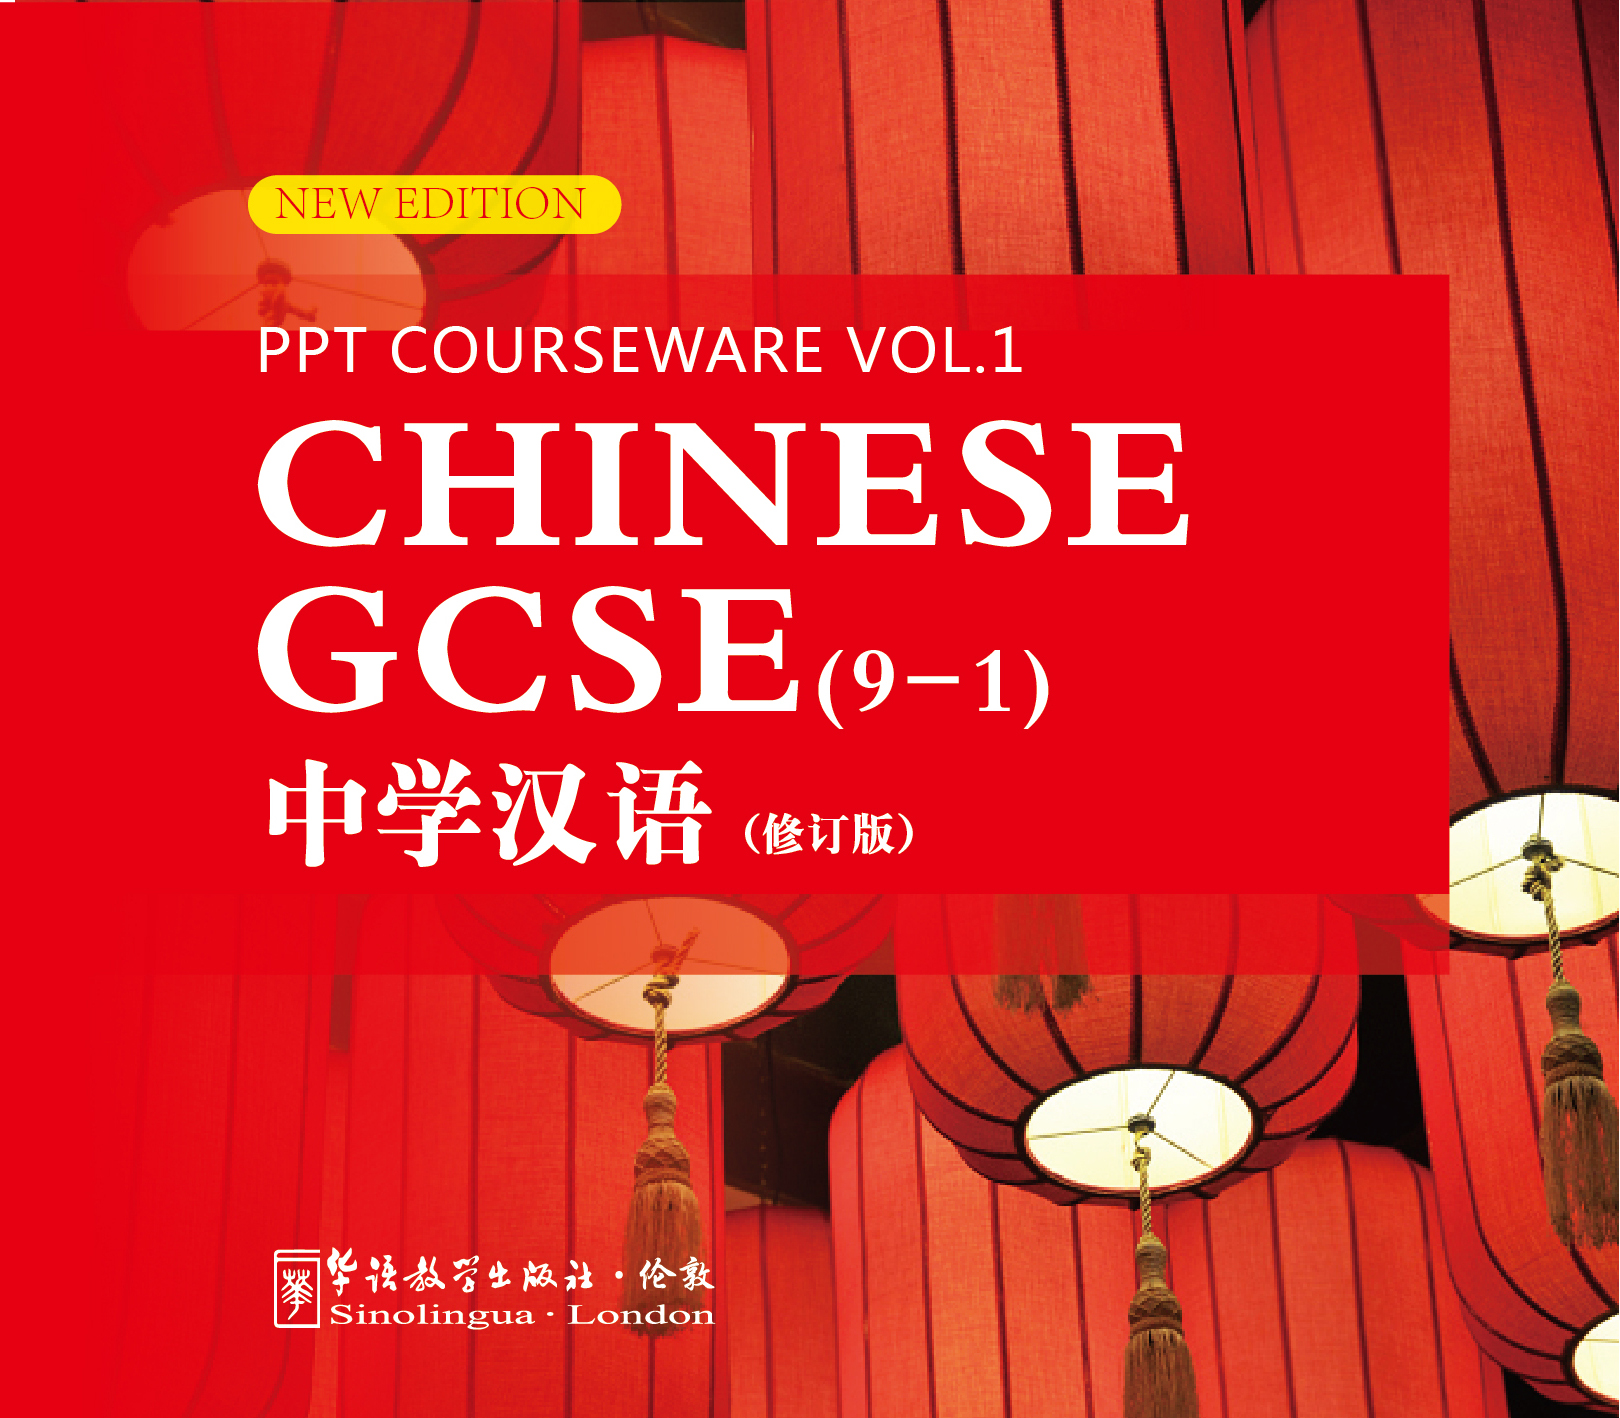 CHINESE GCSE (9-1) PPT Courseware vol.1